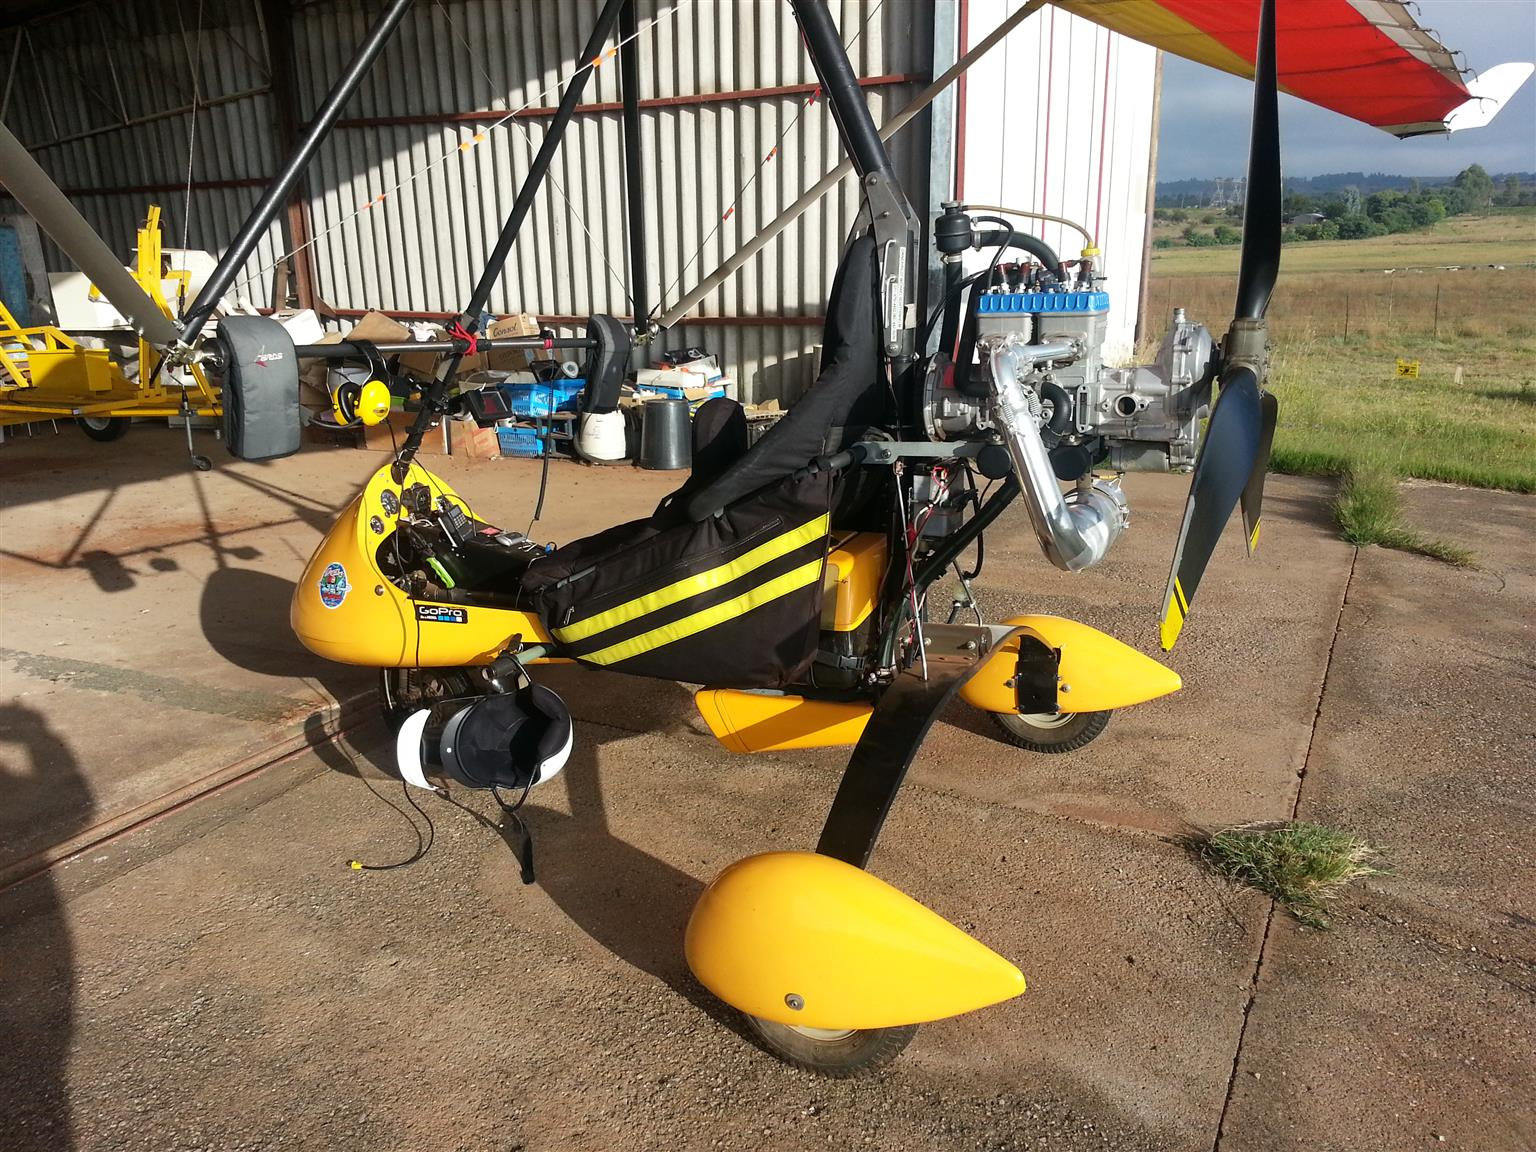 Microlight Antares with near new engine and wing